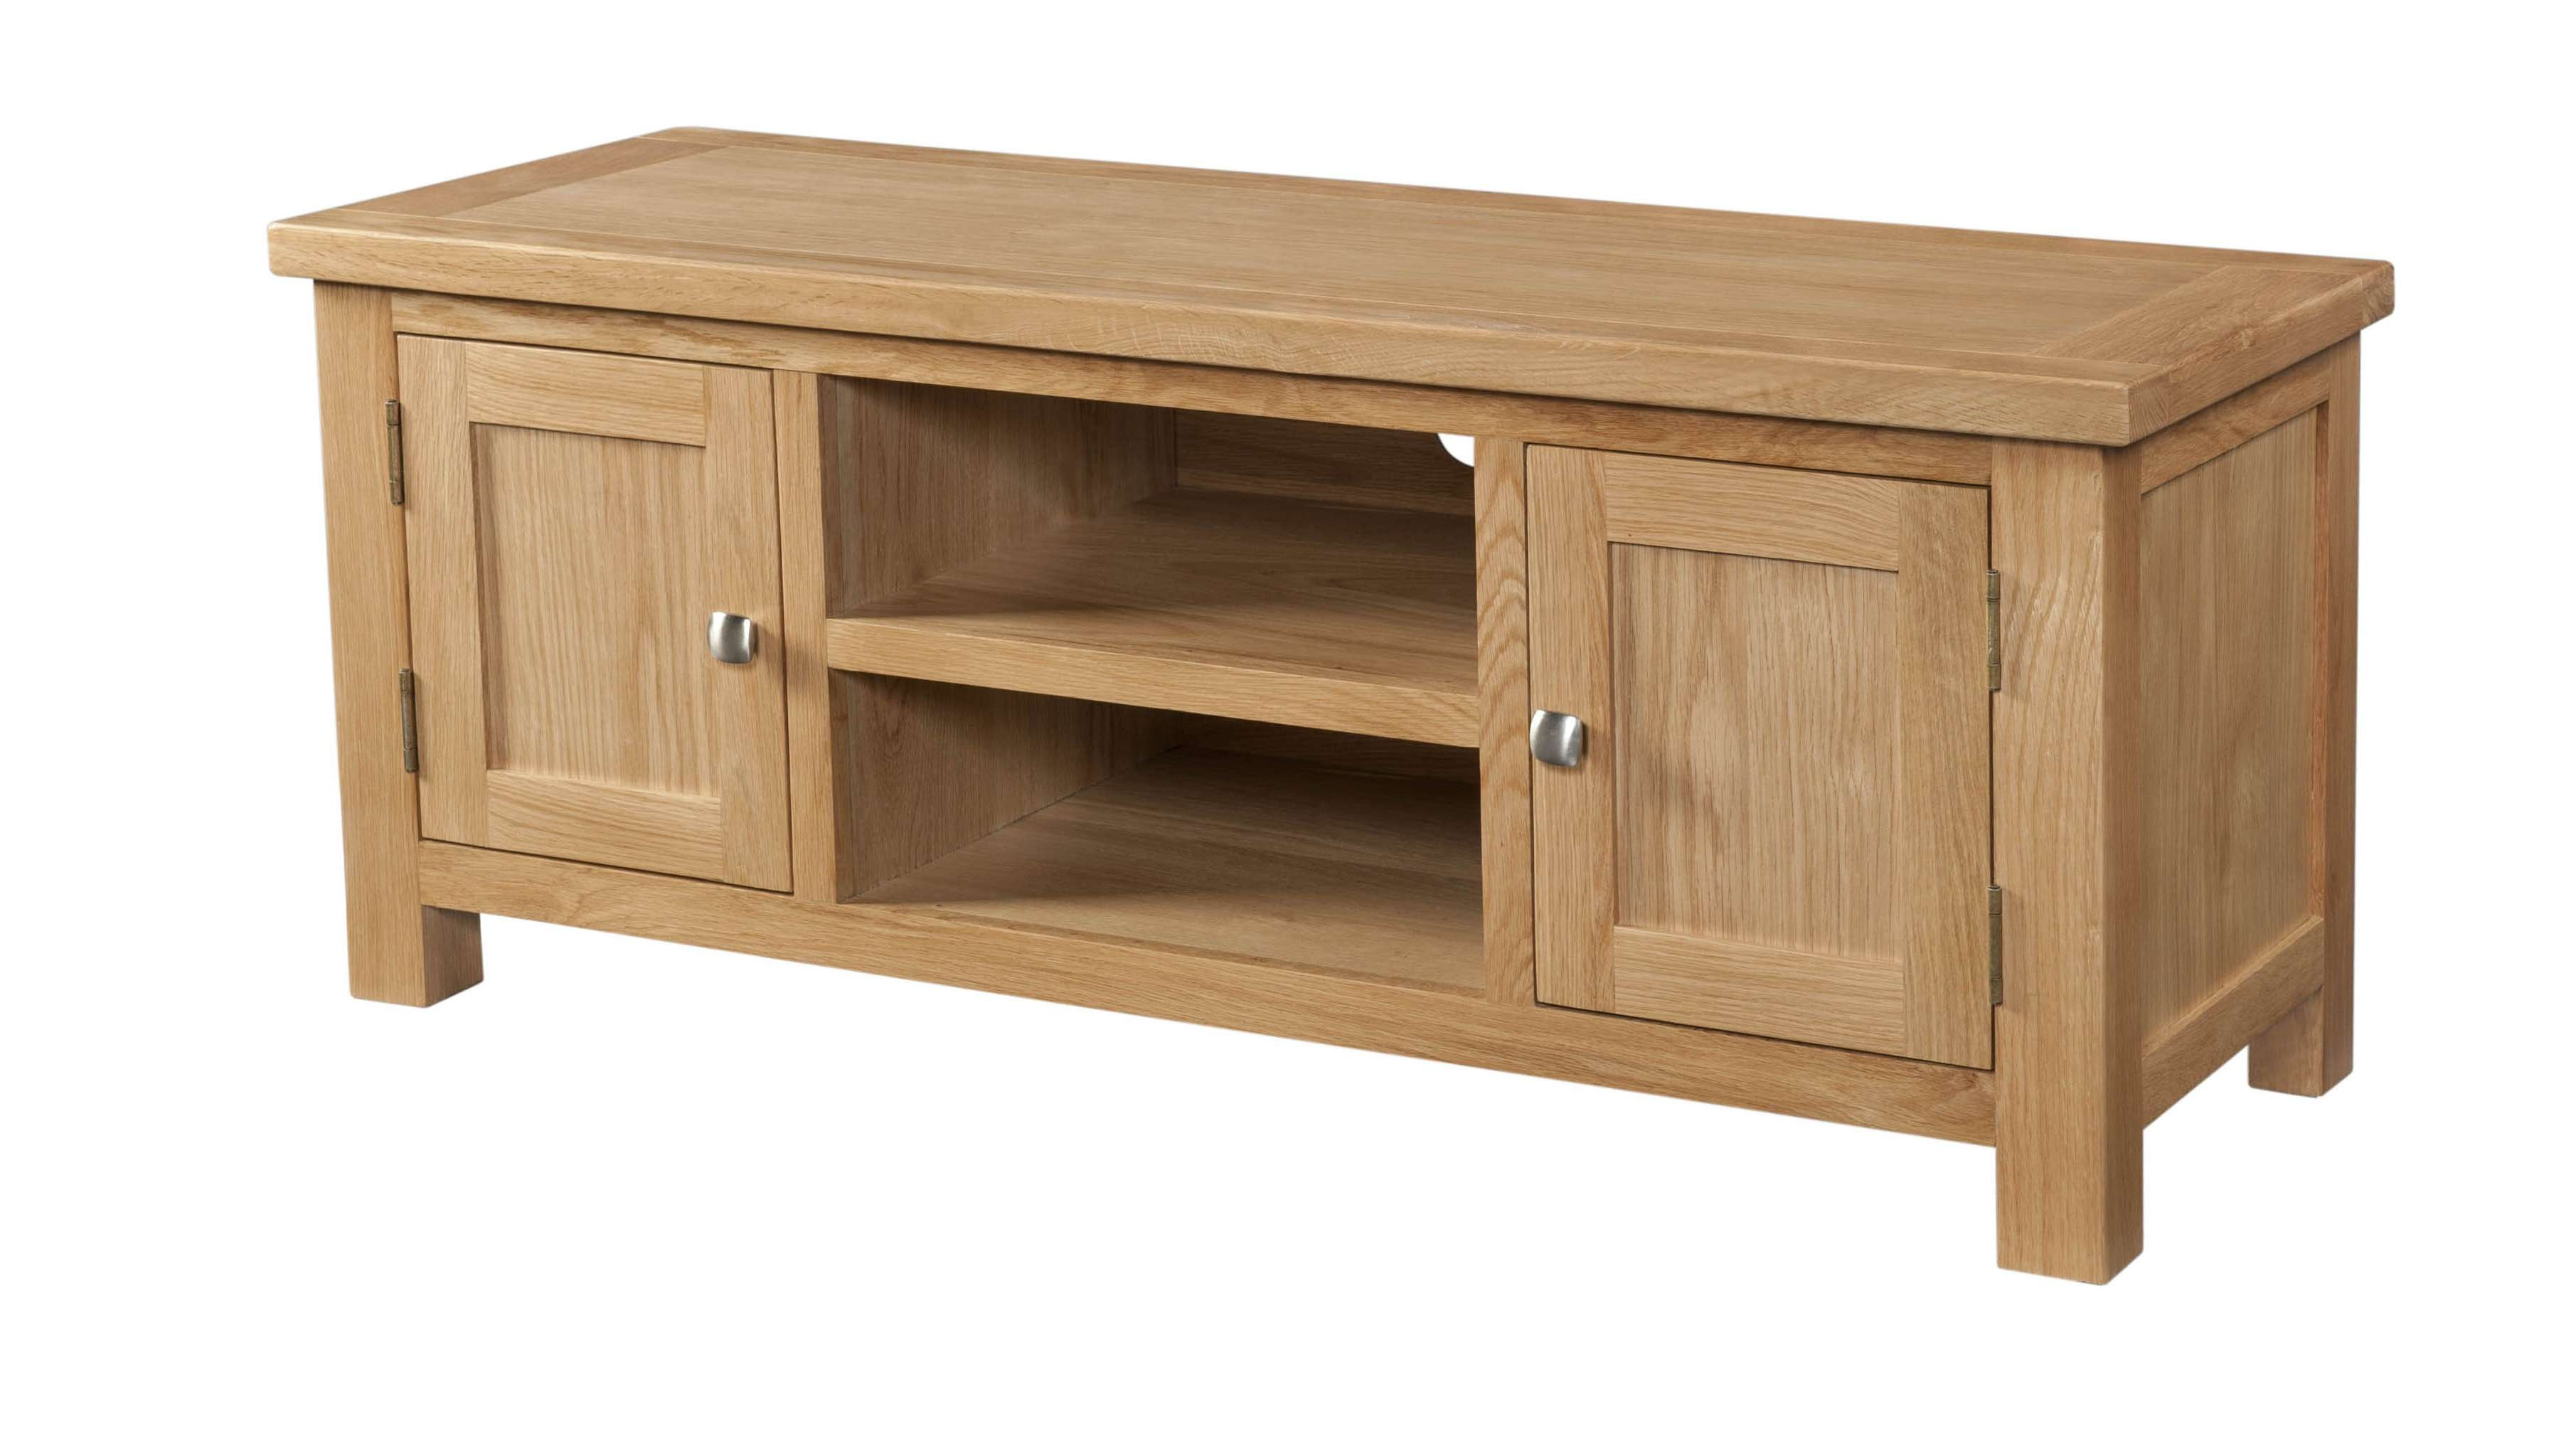 Dorset Large Oak Tv Cabinetdorset Large Oak Tv Cabinet – Branches For Large Oak Tv Cabinets (View 4 of 20)